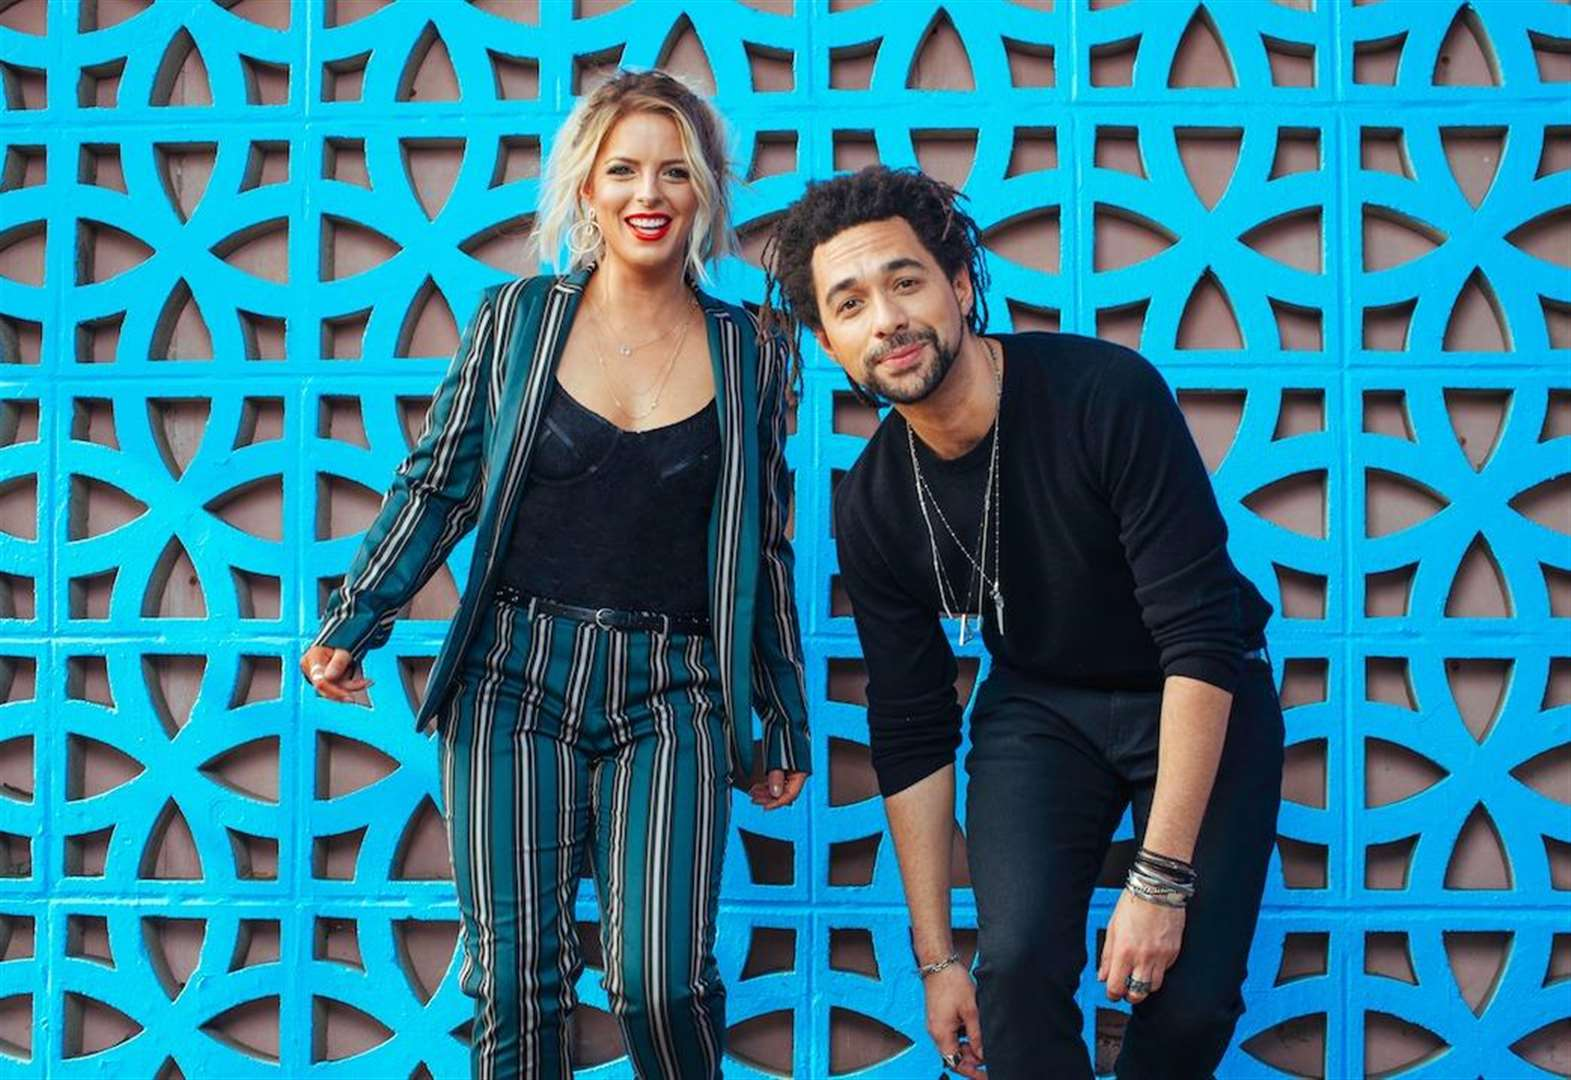 Top country act The Shires come to the county